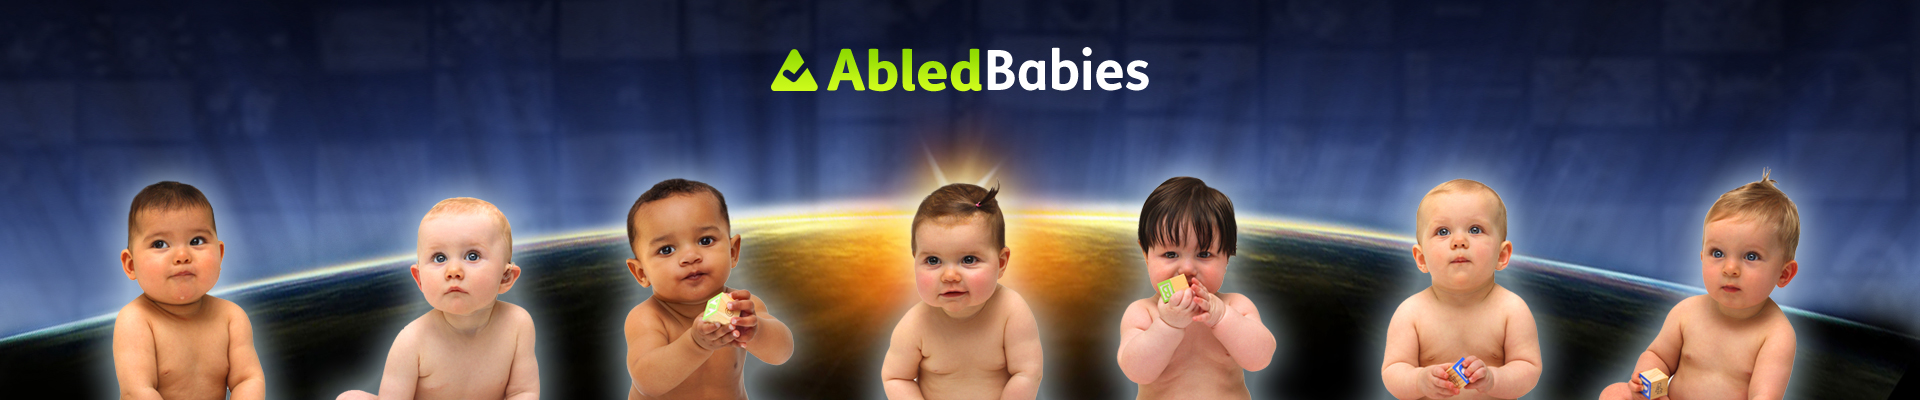 AbledBabies banner shows babies in diapers sitting side by side with the photo backdrop of the horizontal curve of the earth at sunrise.